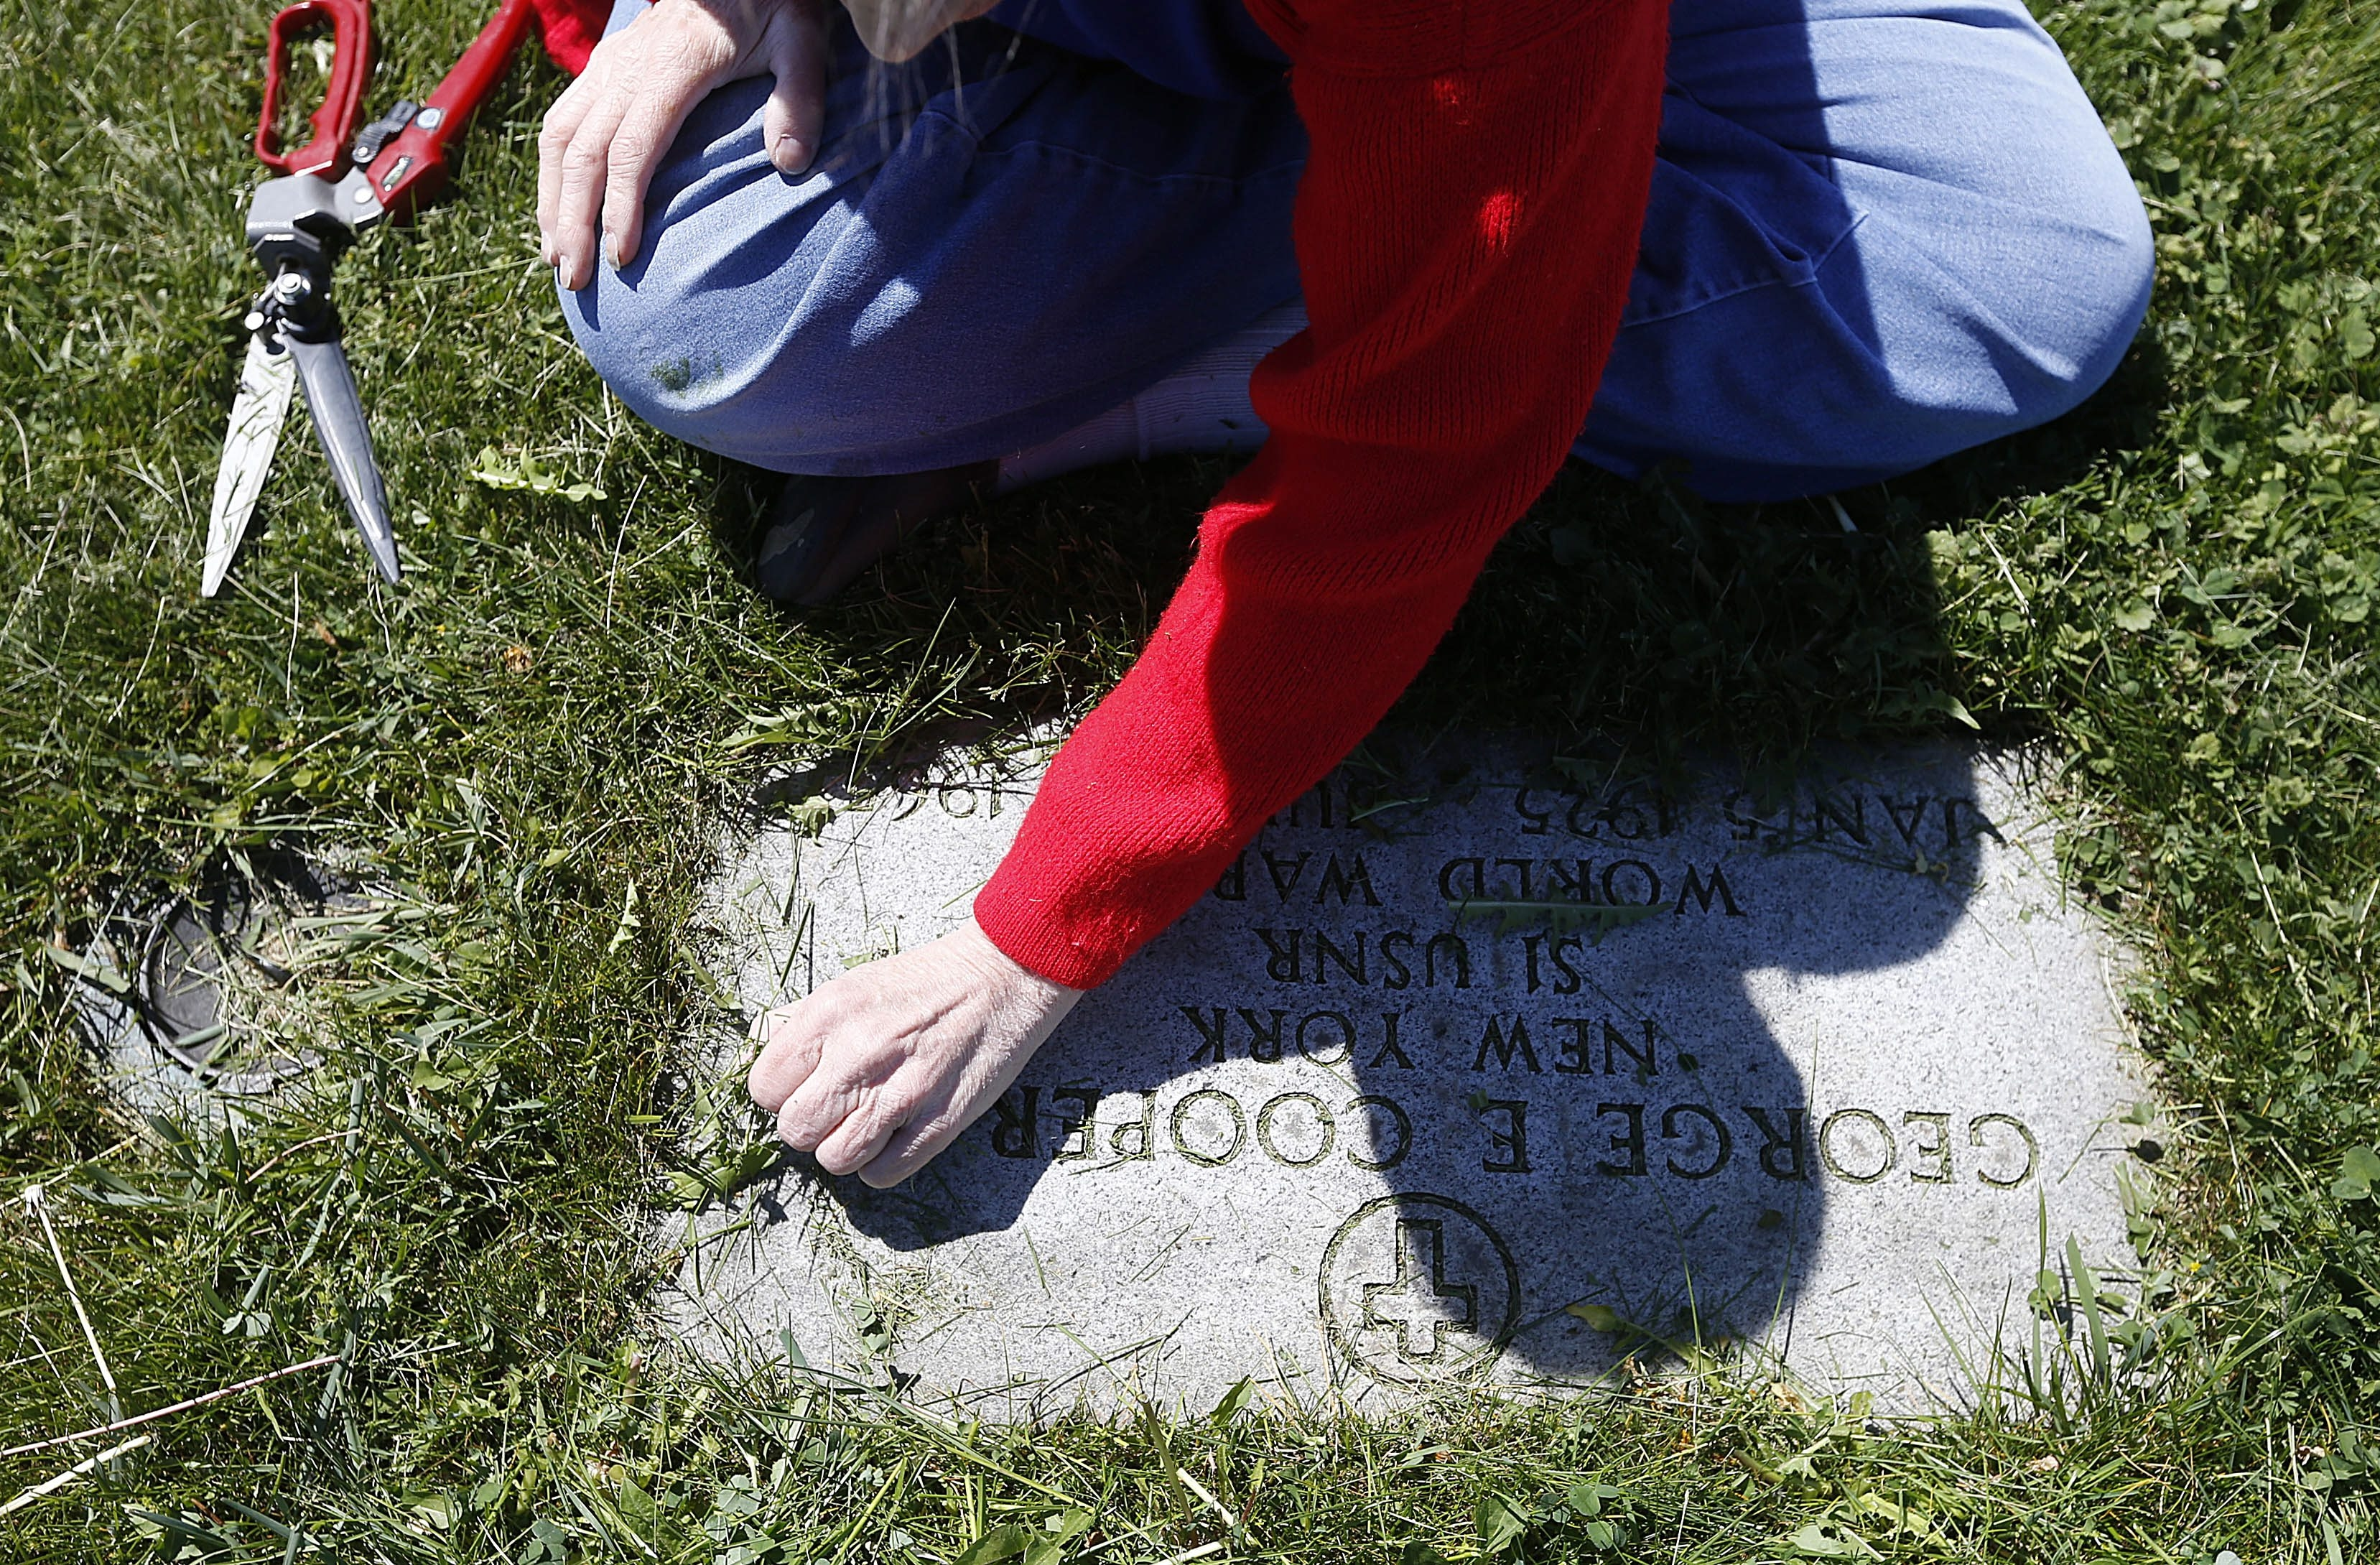 Lisa Cooper uses gardening scissors and a soft touch to trim back the grass on her father George E. Cooper Jr.'s gravestone at Mount Olivet Cemetery in the Town of Tonawanda.